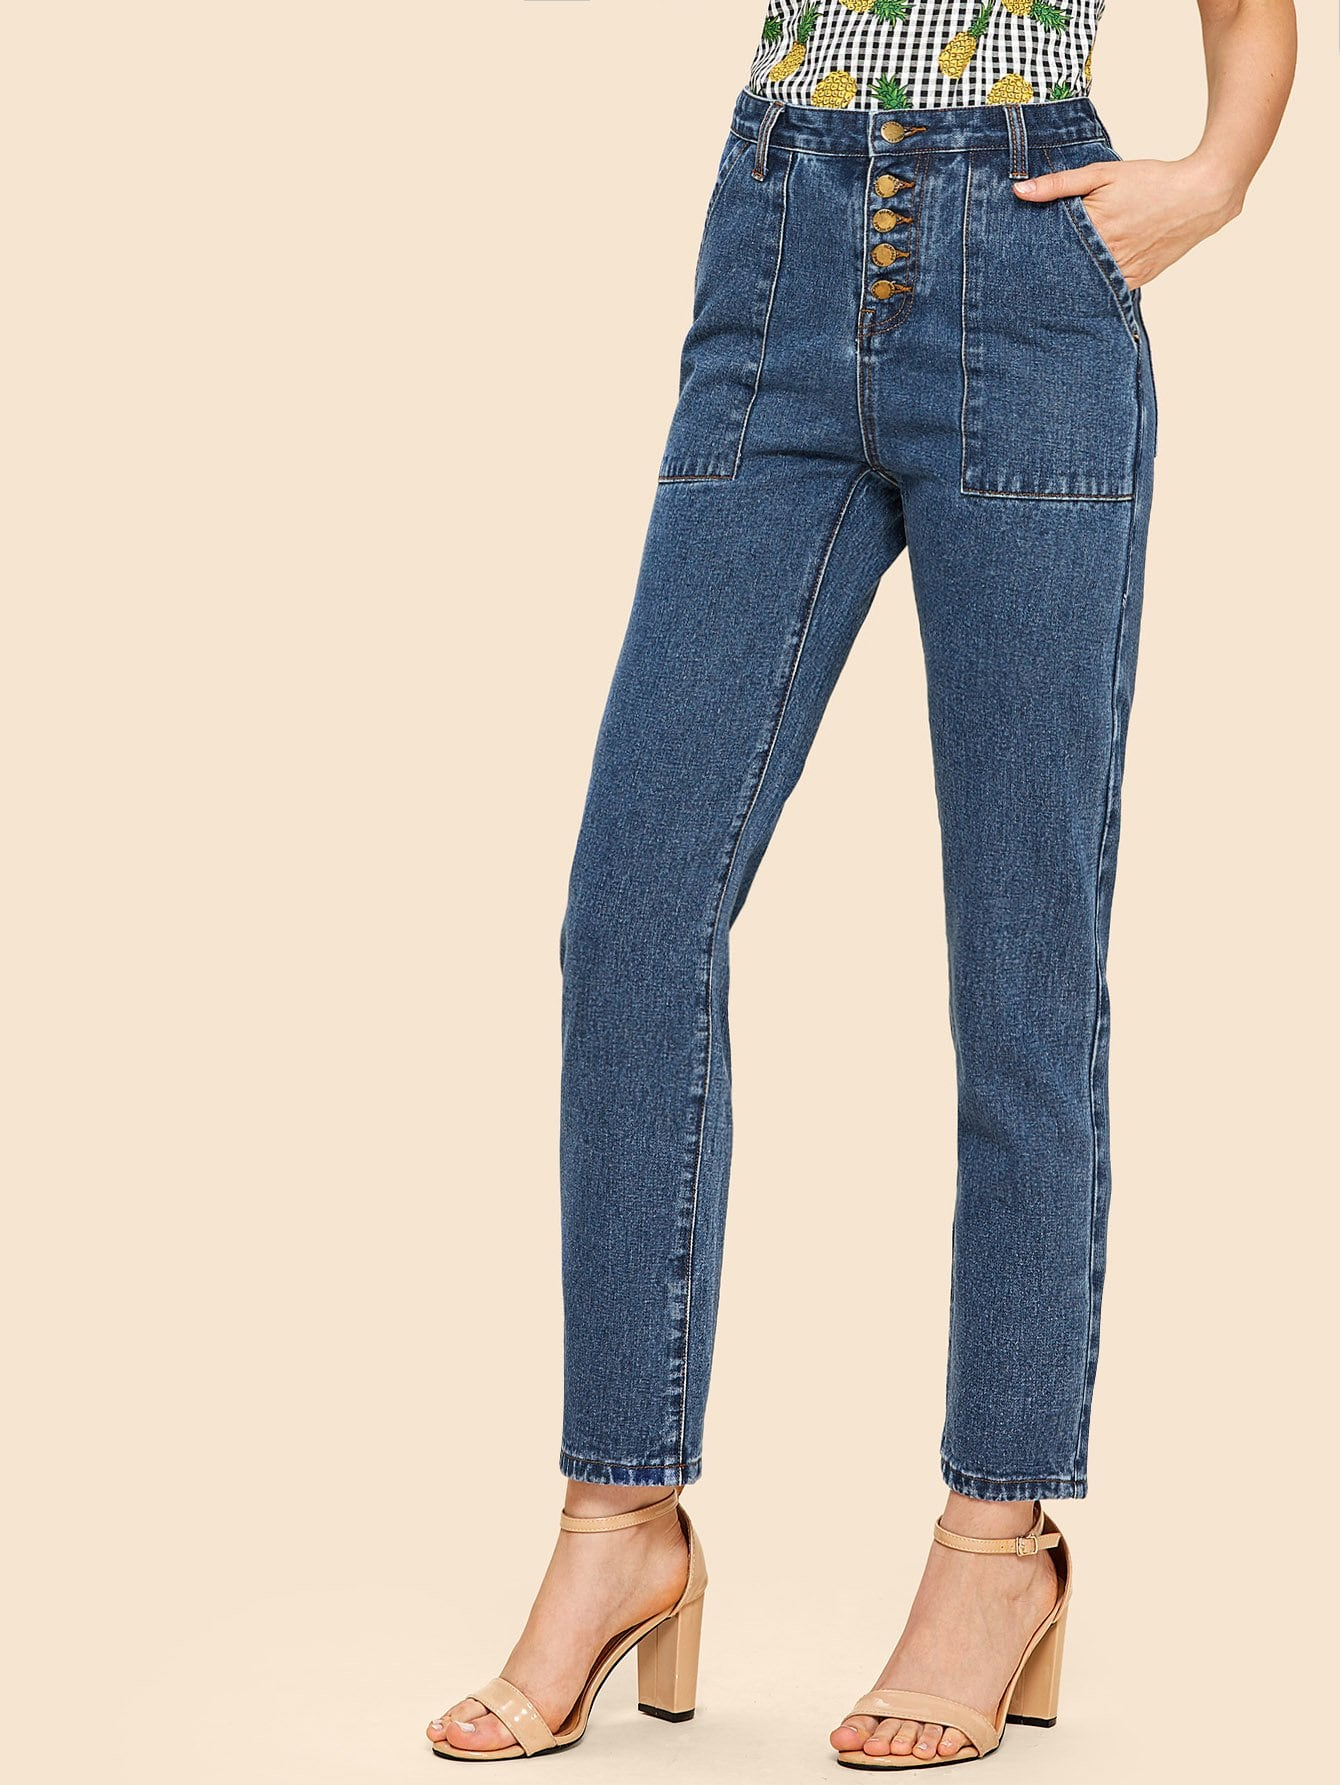 Patch Pocket Front Button Fly Jeans